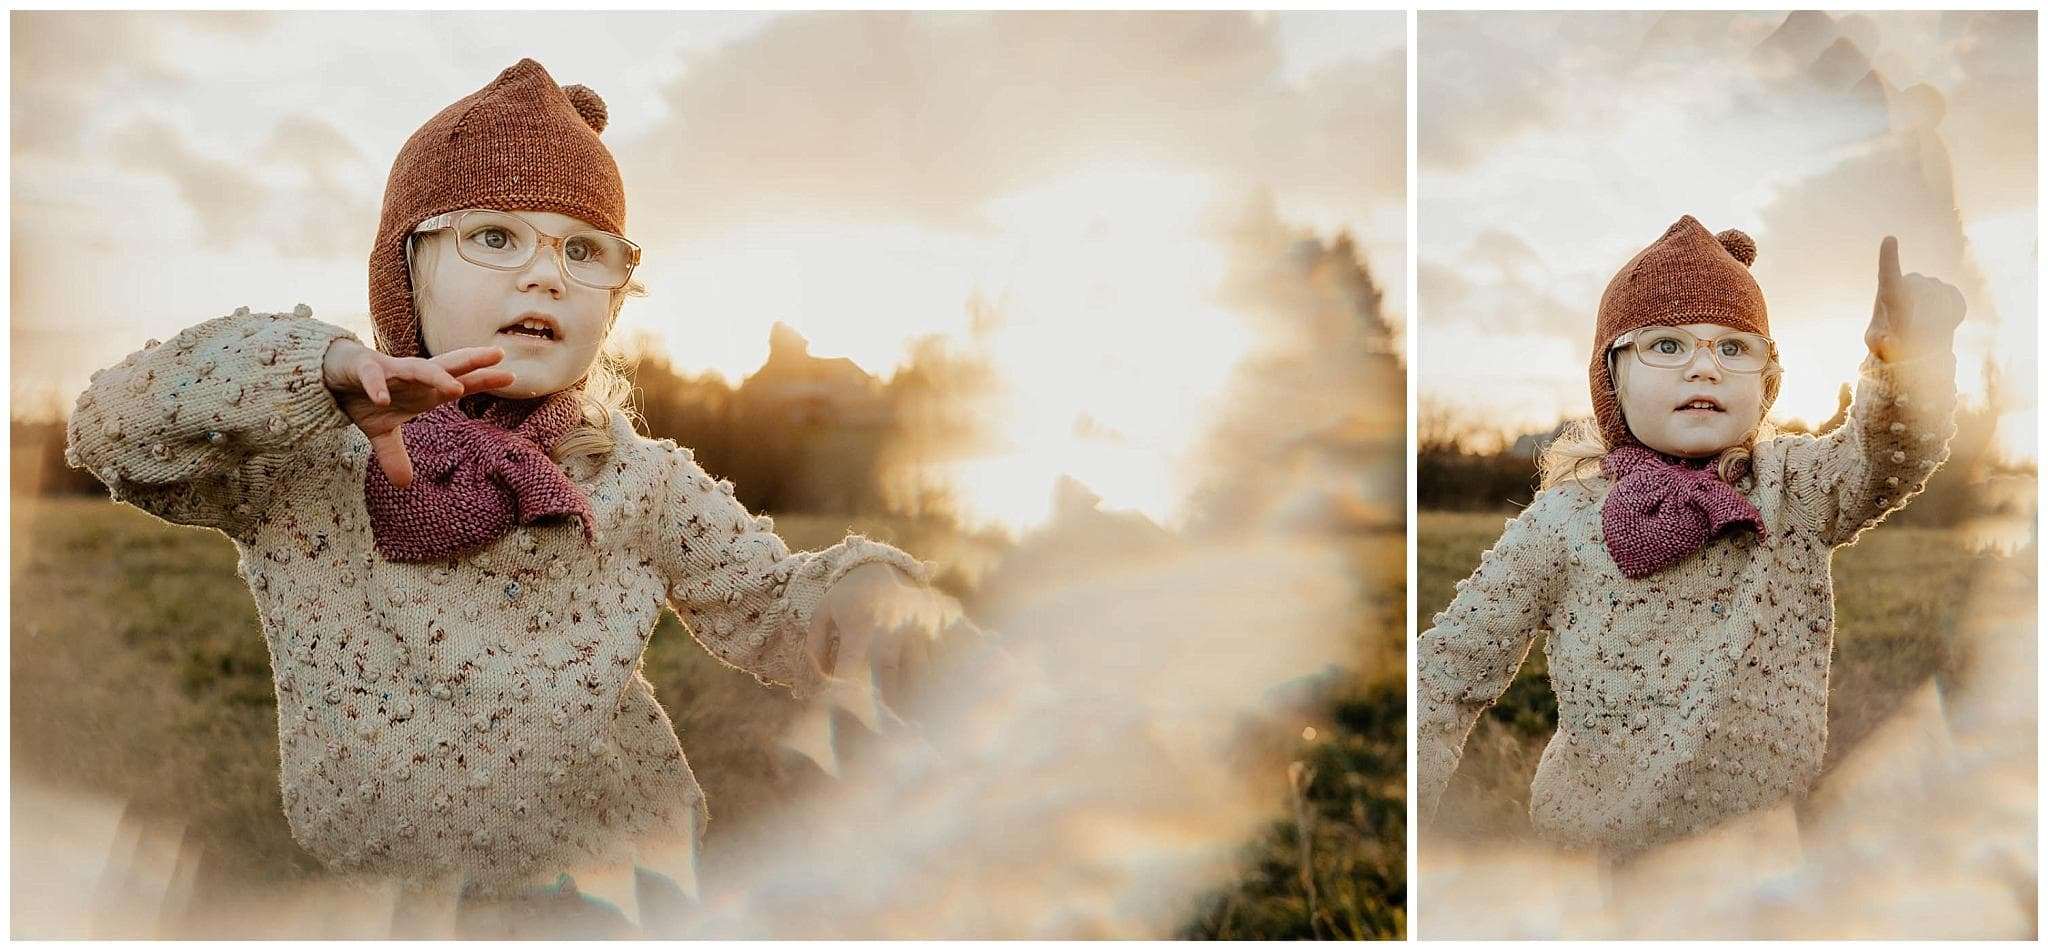 Adorable 3-year-old girl in a beanie at sunset with a circular prism effect